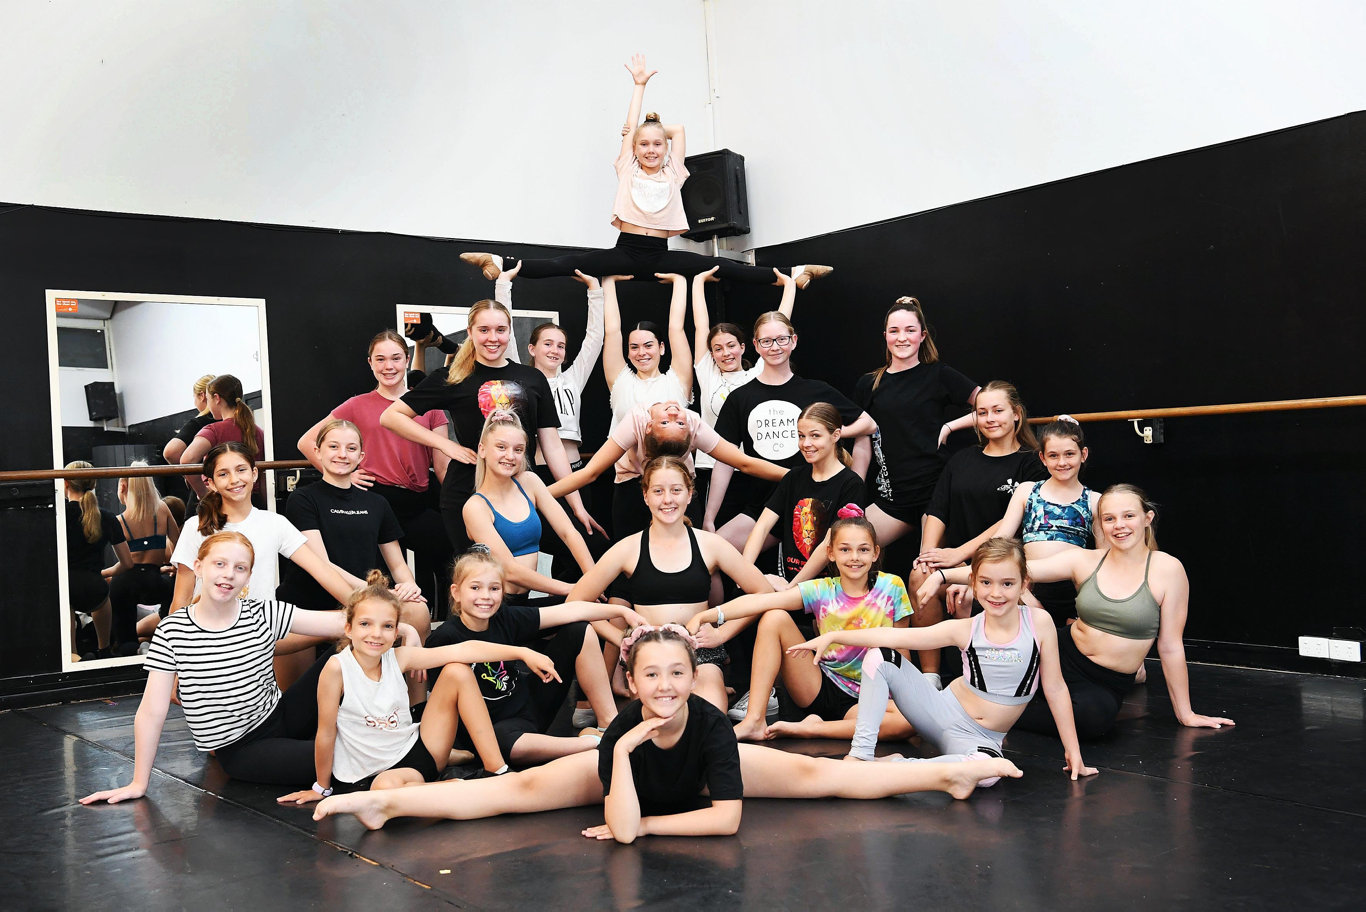 Dance championships - Hervey Bay Dance School students will be competing in the 2019 Get the Beat finals in Caloundra.